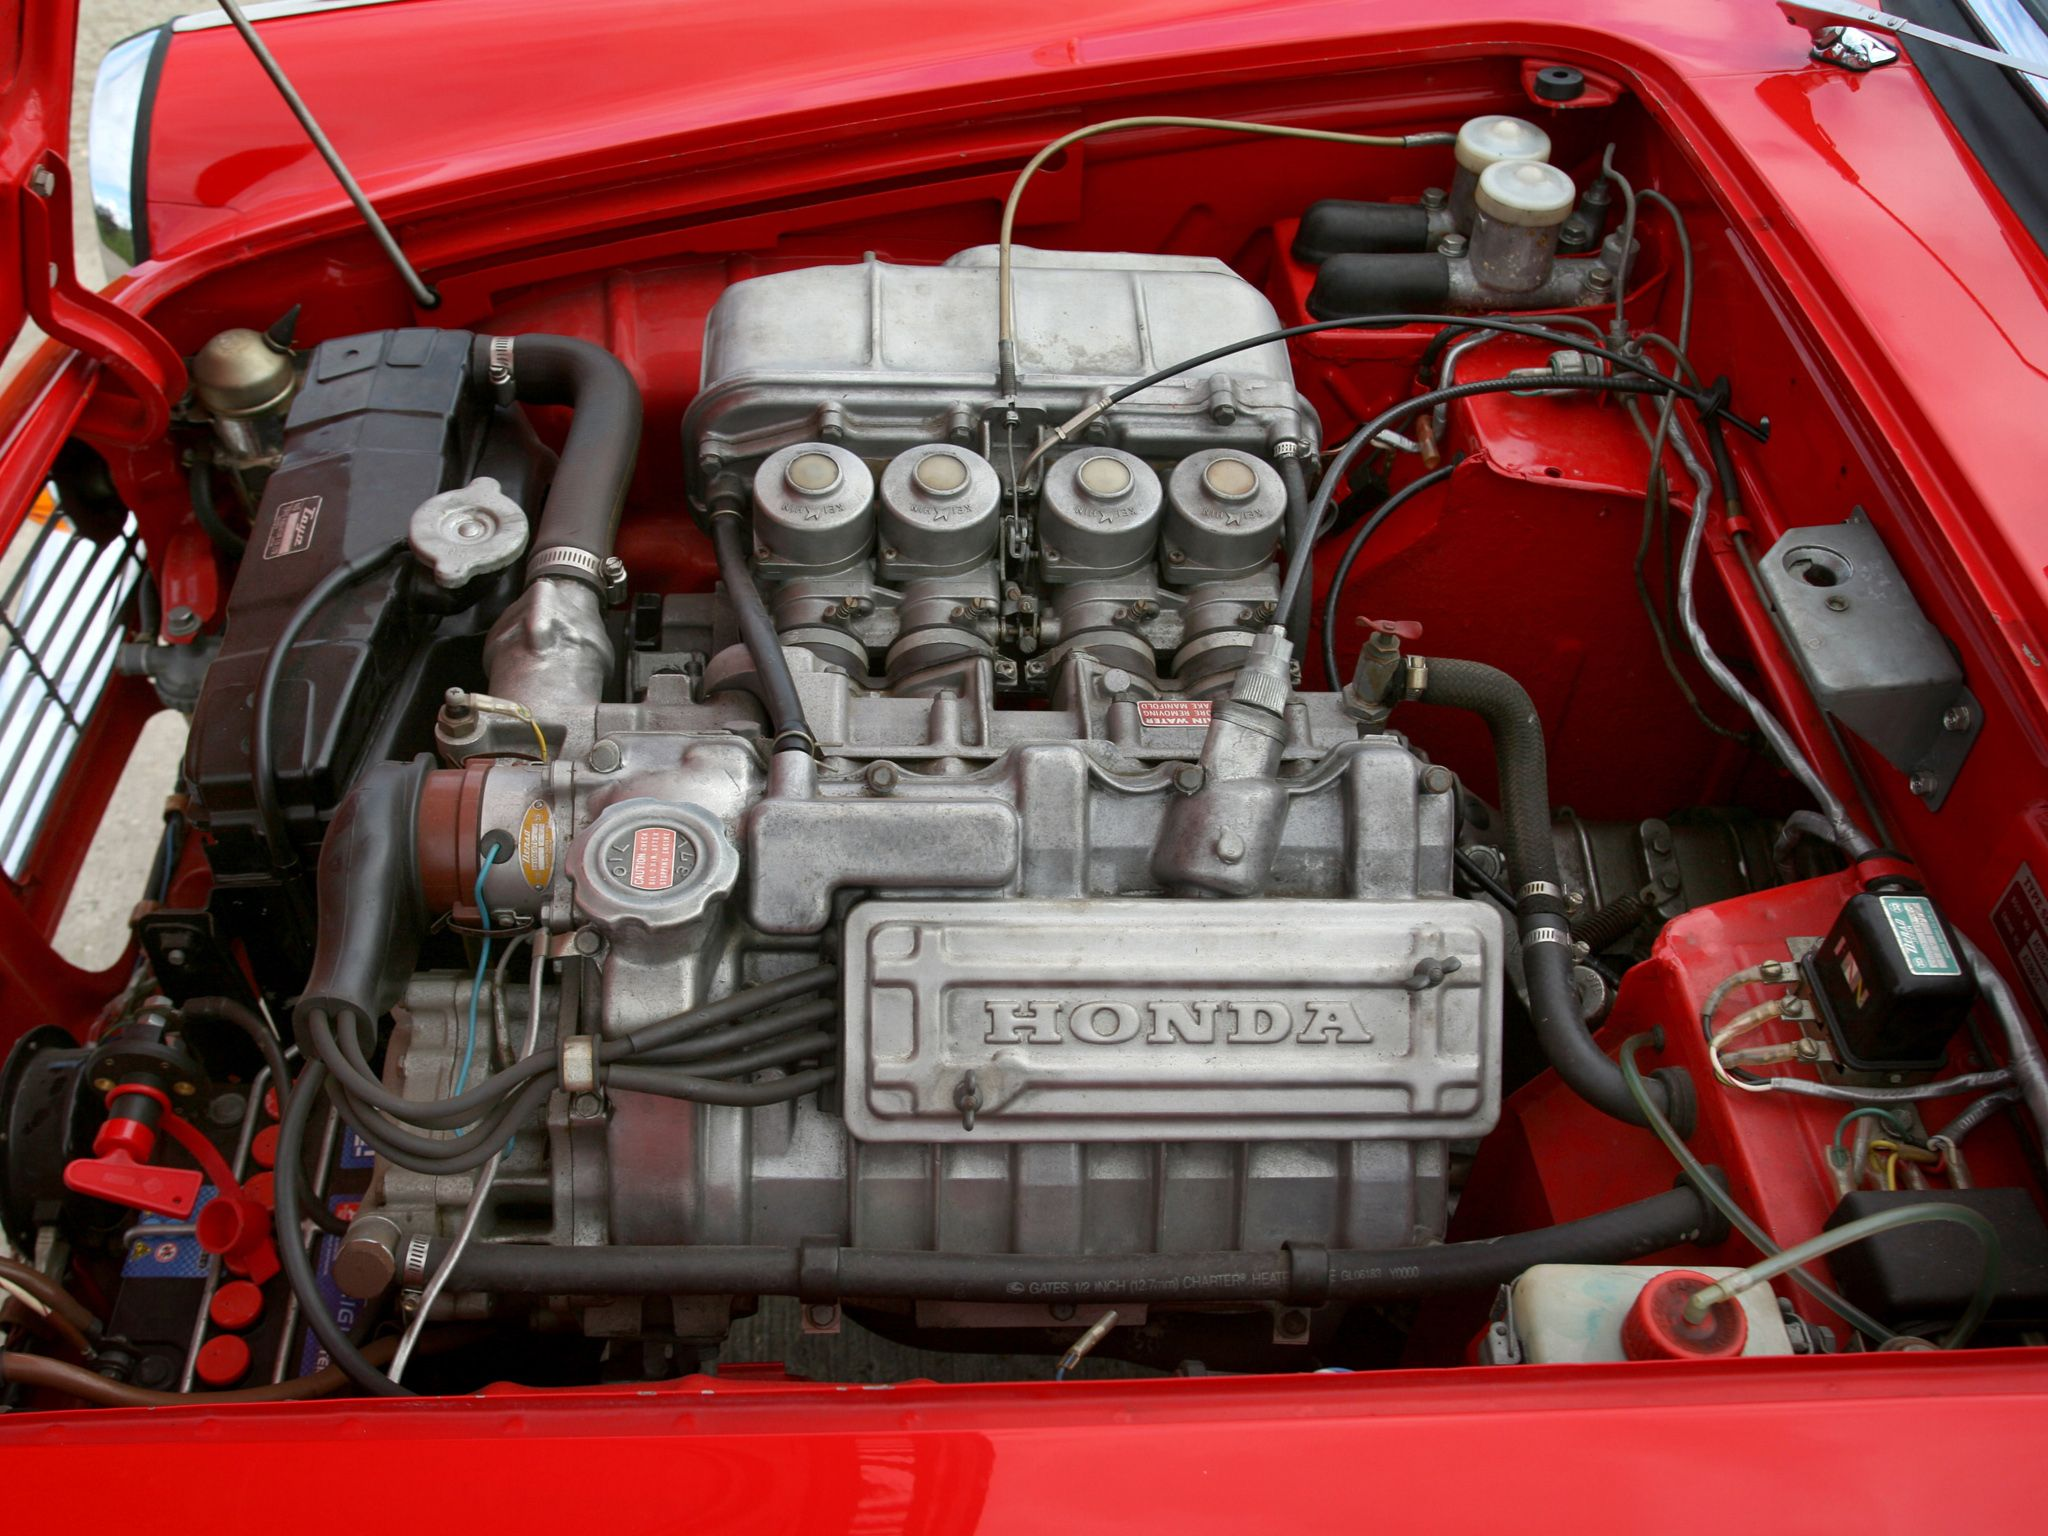 1966 Honda S 600 motor. It was a 600 cc with 4 carburetors, rpm 11000. I had one early 1970. Not many mechanics wanted to work on it back them.